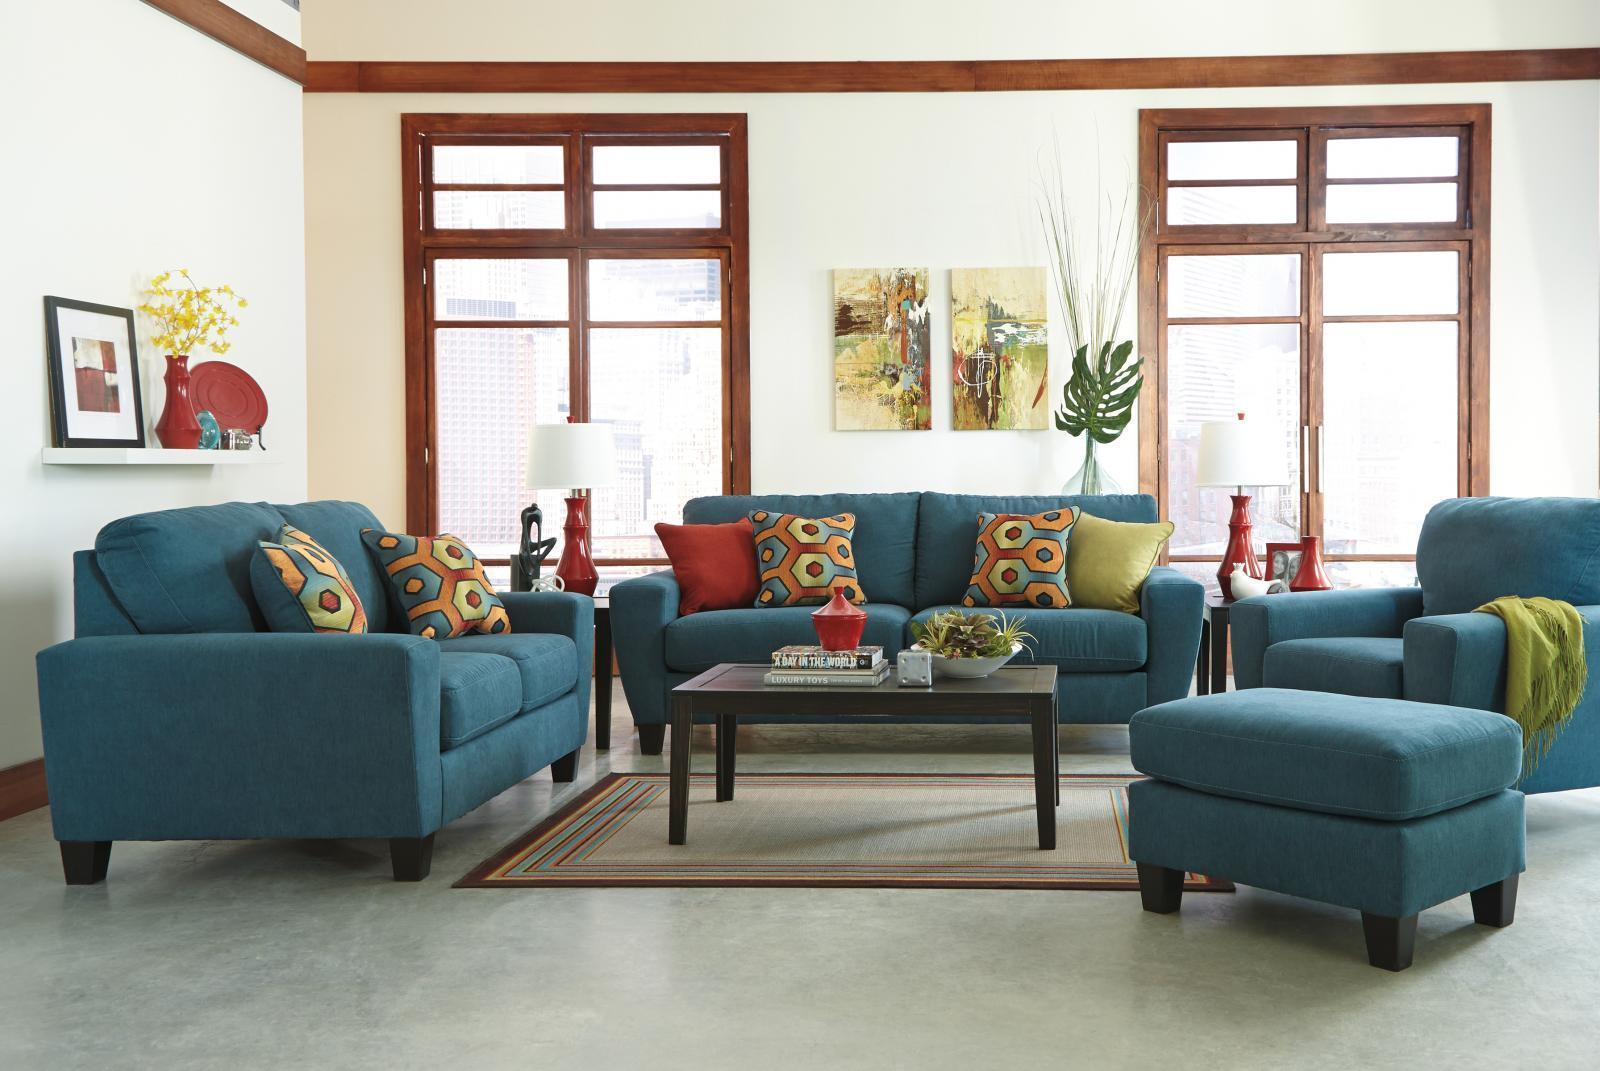 Ashley Sagen Living Room Set 3pcs in Teal Textured Microfiber Contemporary Style